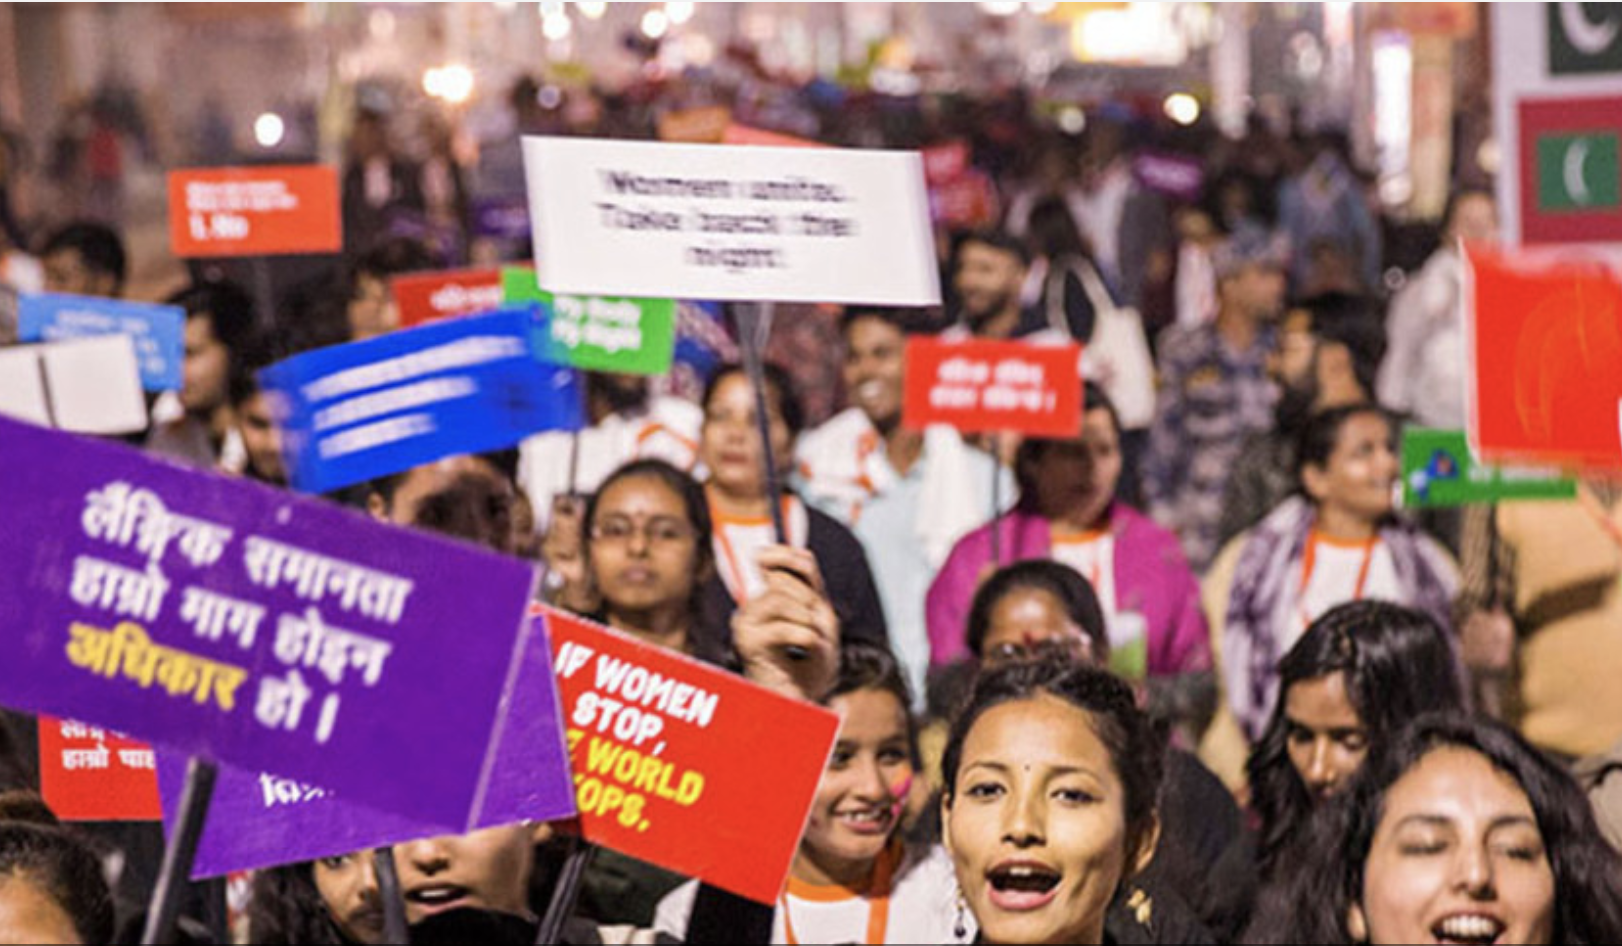 Photo shows young people holding up signs and protesting in Nepal.